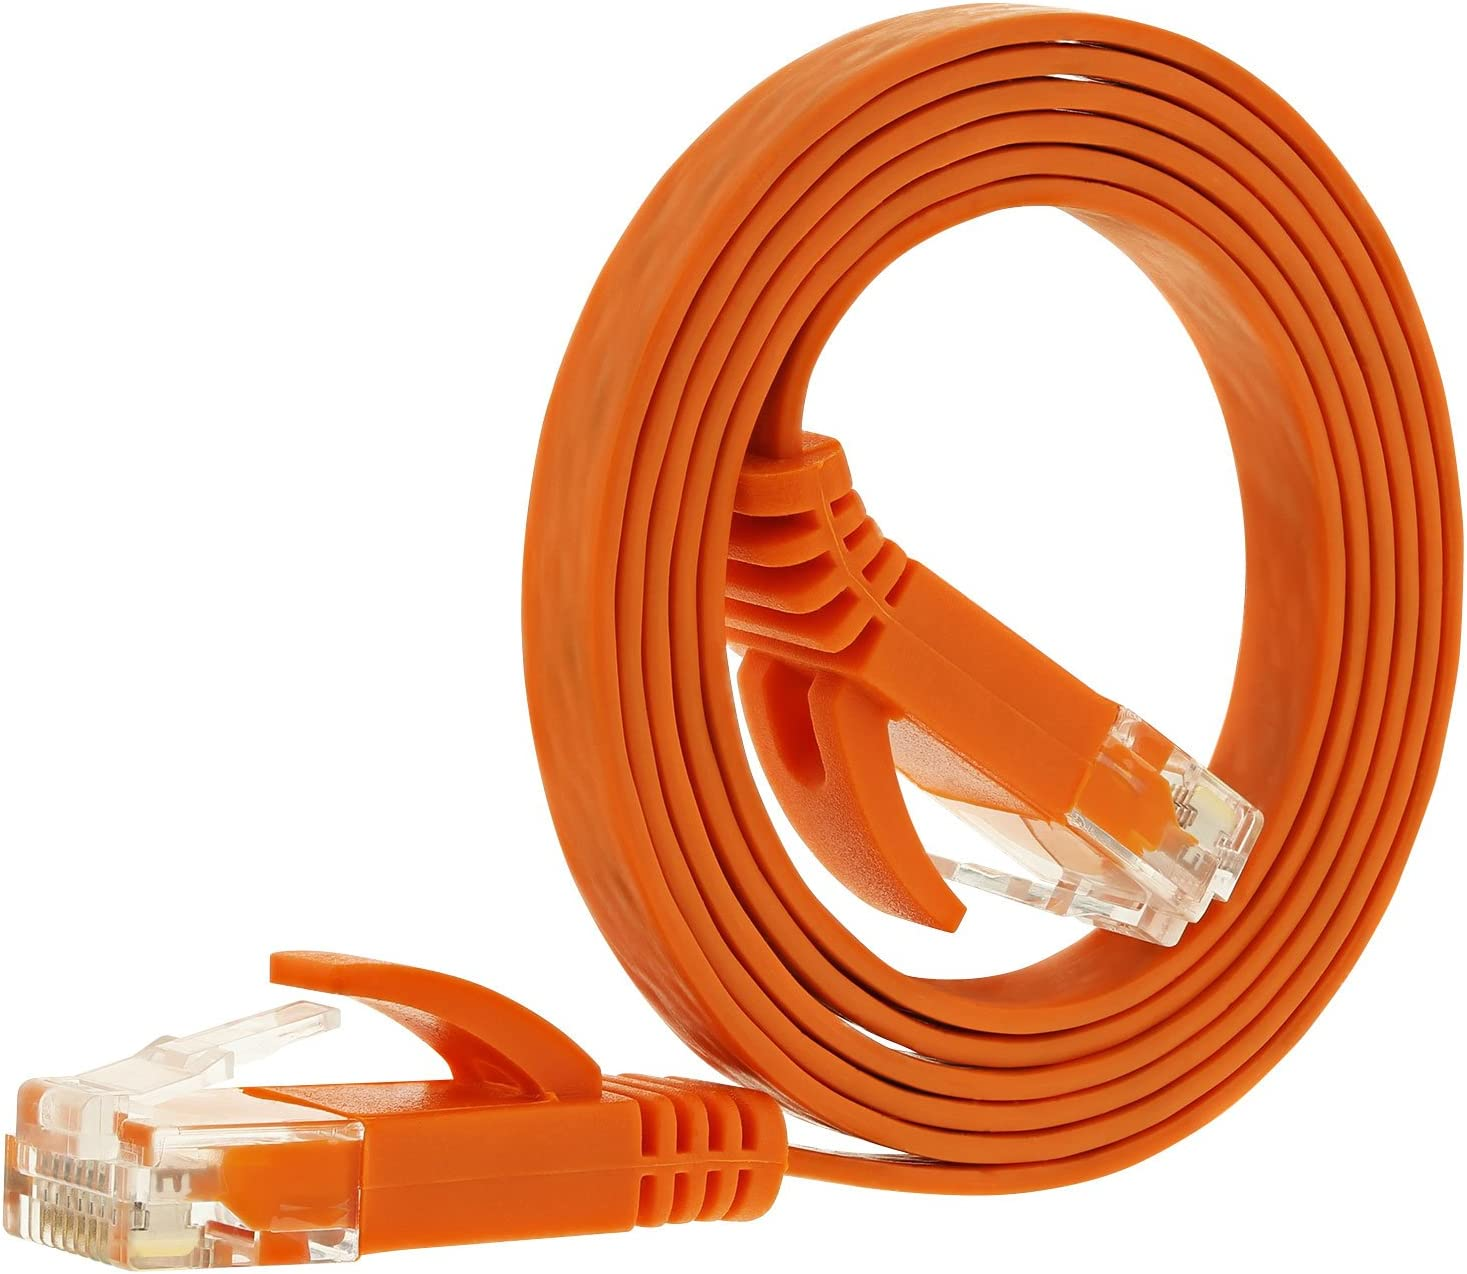 Fosmon Networking Cat5e Flat Tangle Free Ethernet Patch Cable Orange, 3 Feet